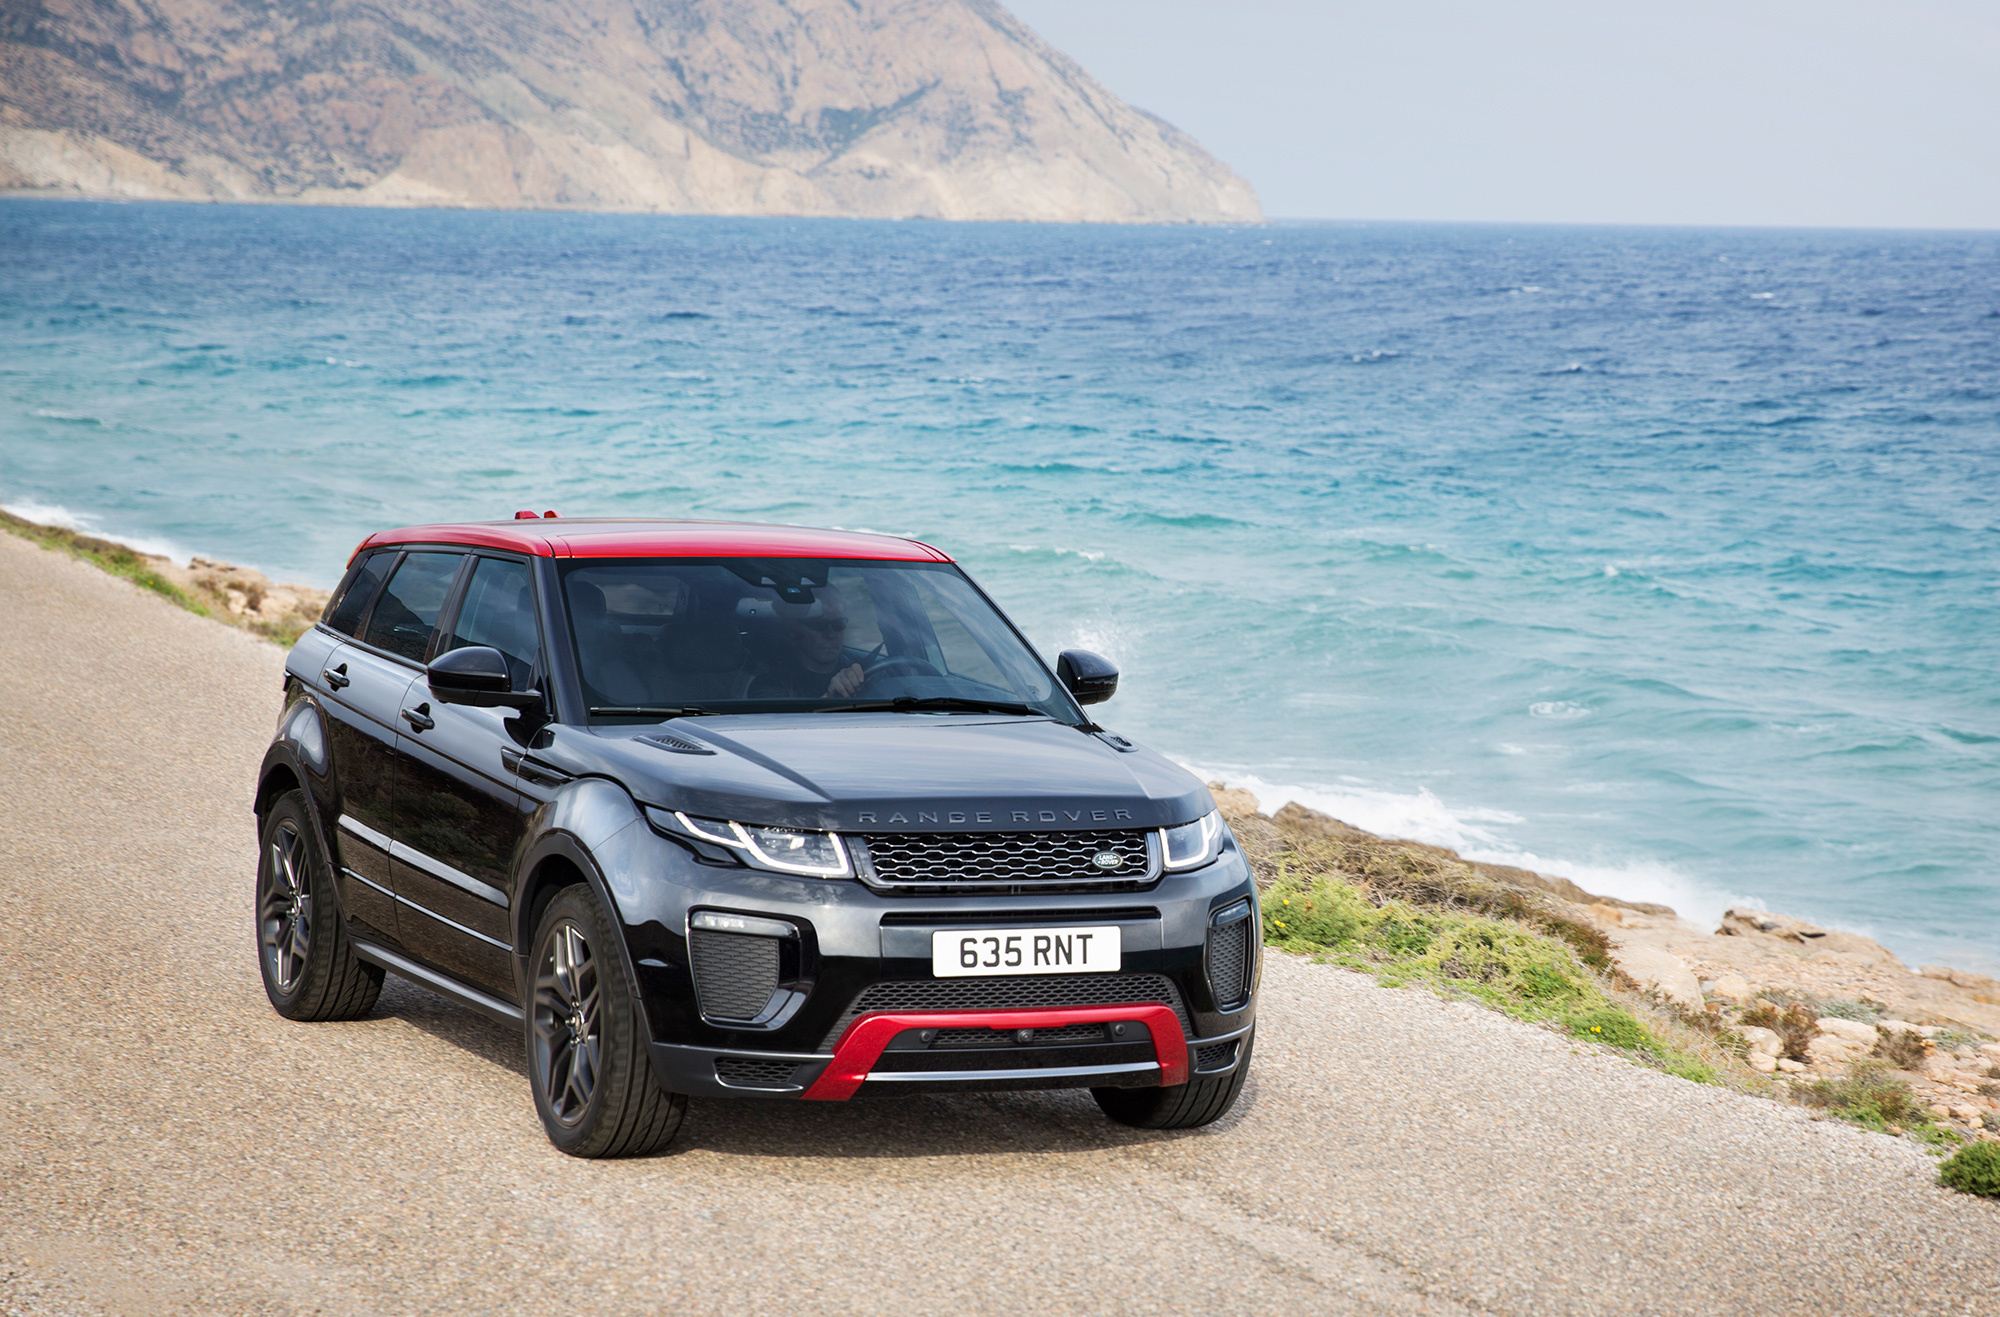 Range Rover Evoque 2017 High Quality Wallpapers